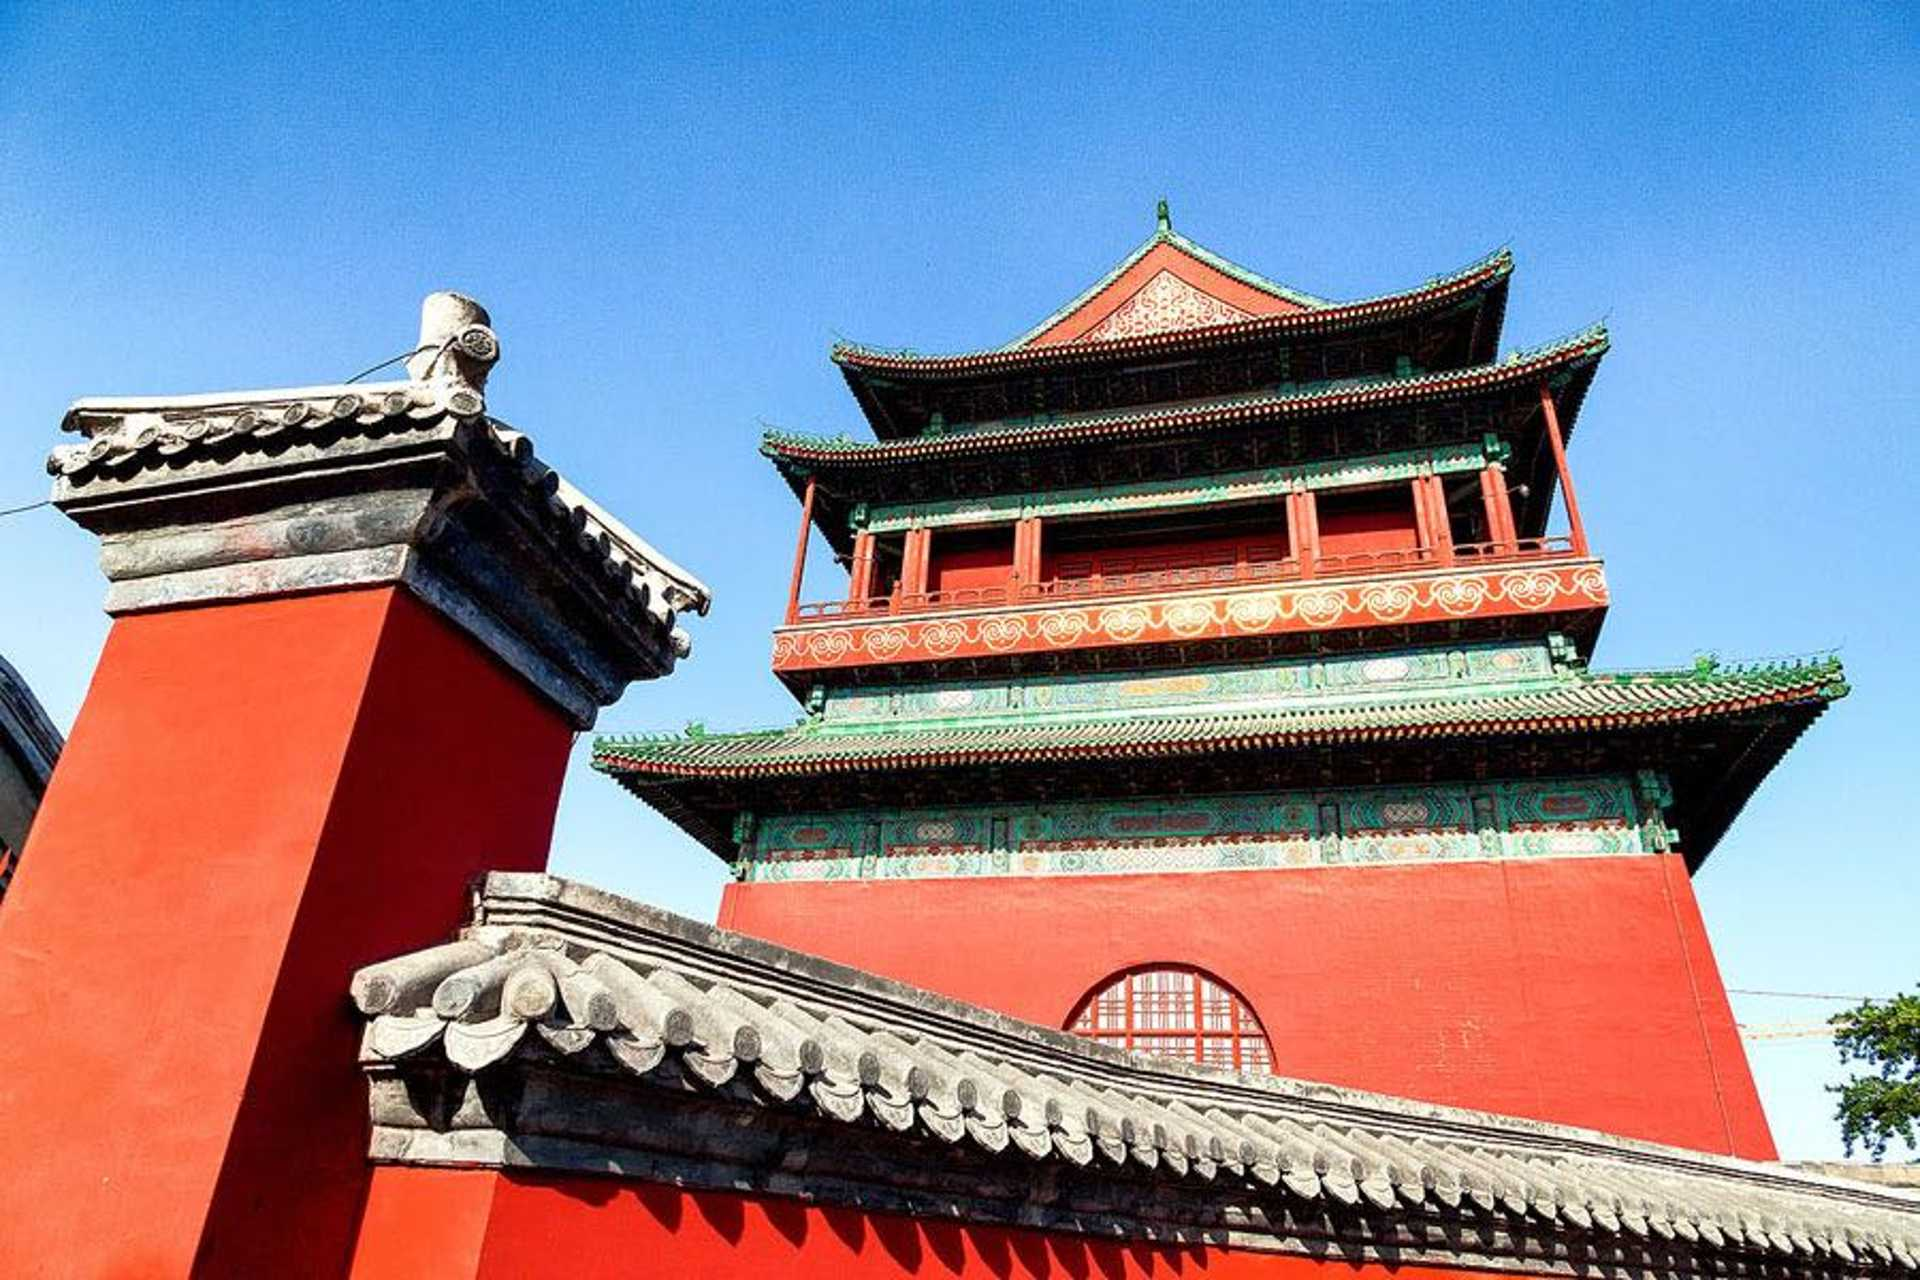 9 - The Drum Tower